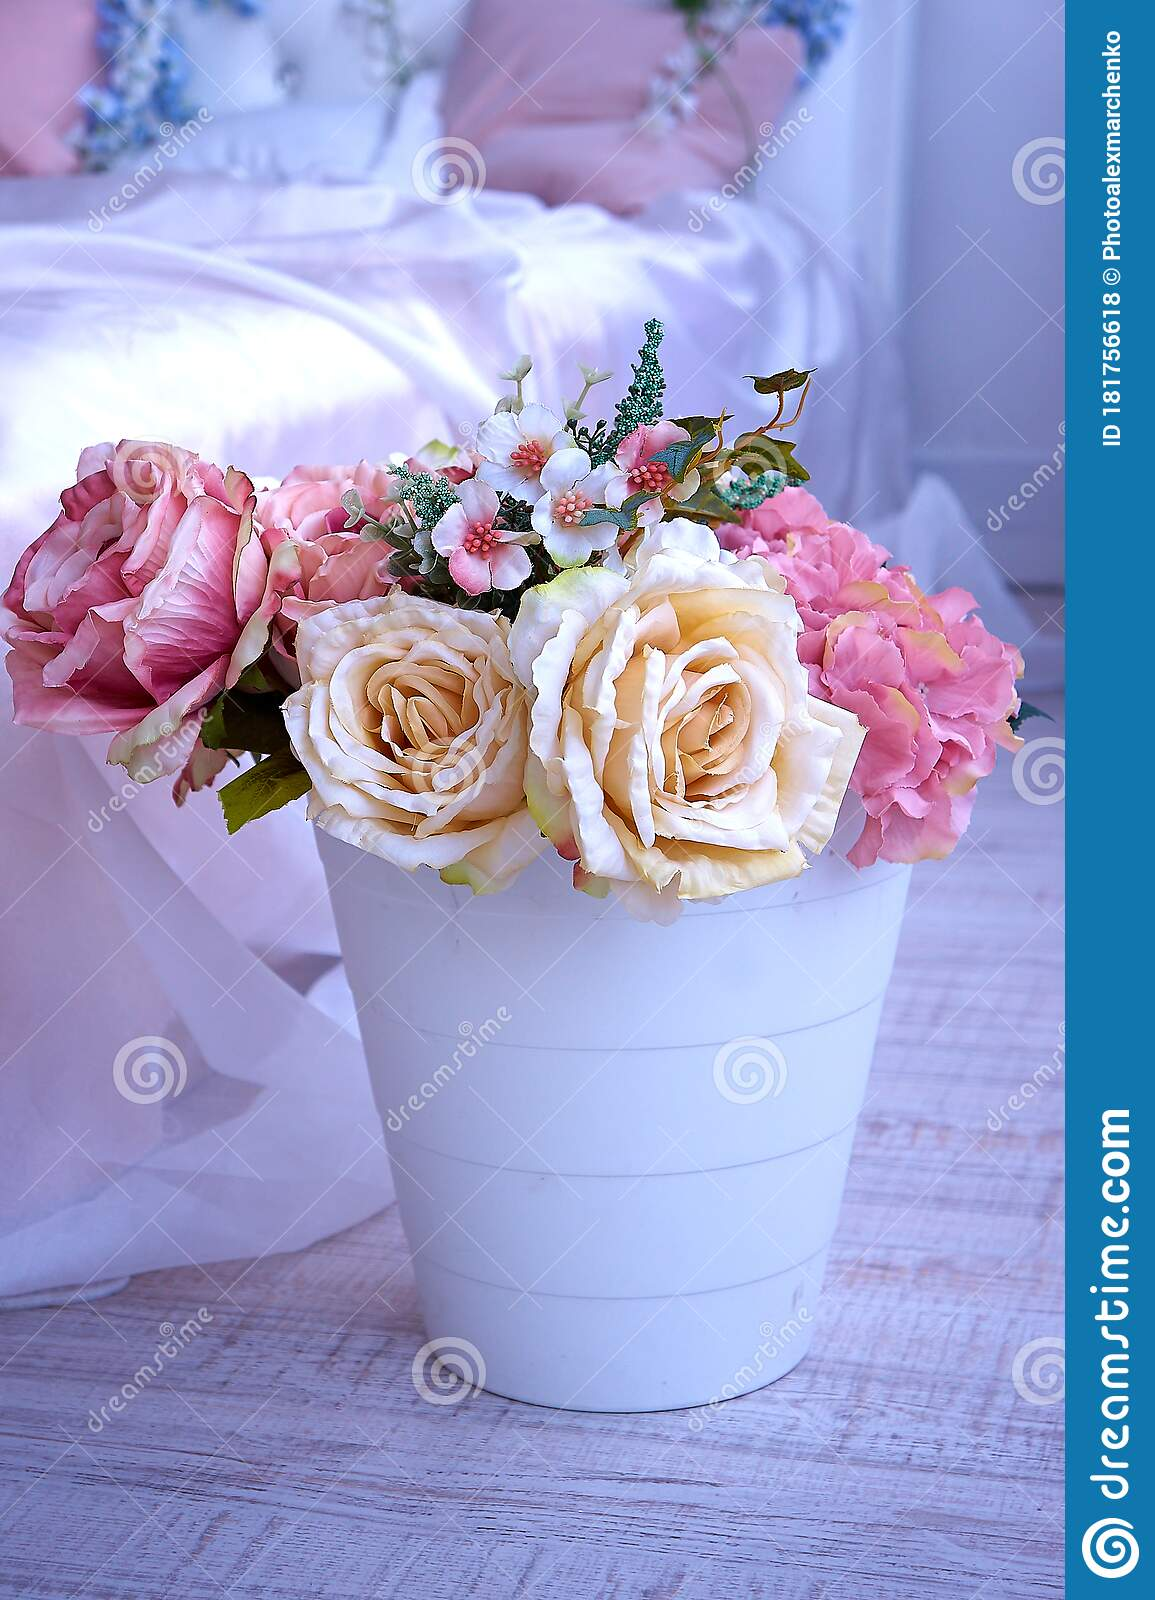 A Bouquet Of Artificial Flowers In A Vase On The Floor By The Bed Stock Photo Image Of Colorful Gift 181756618